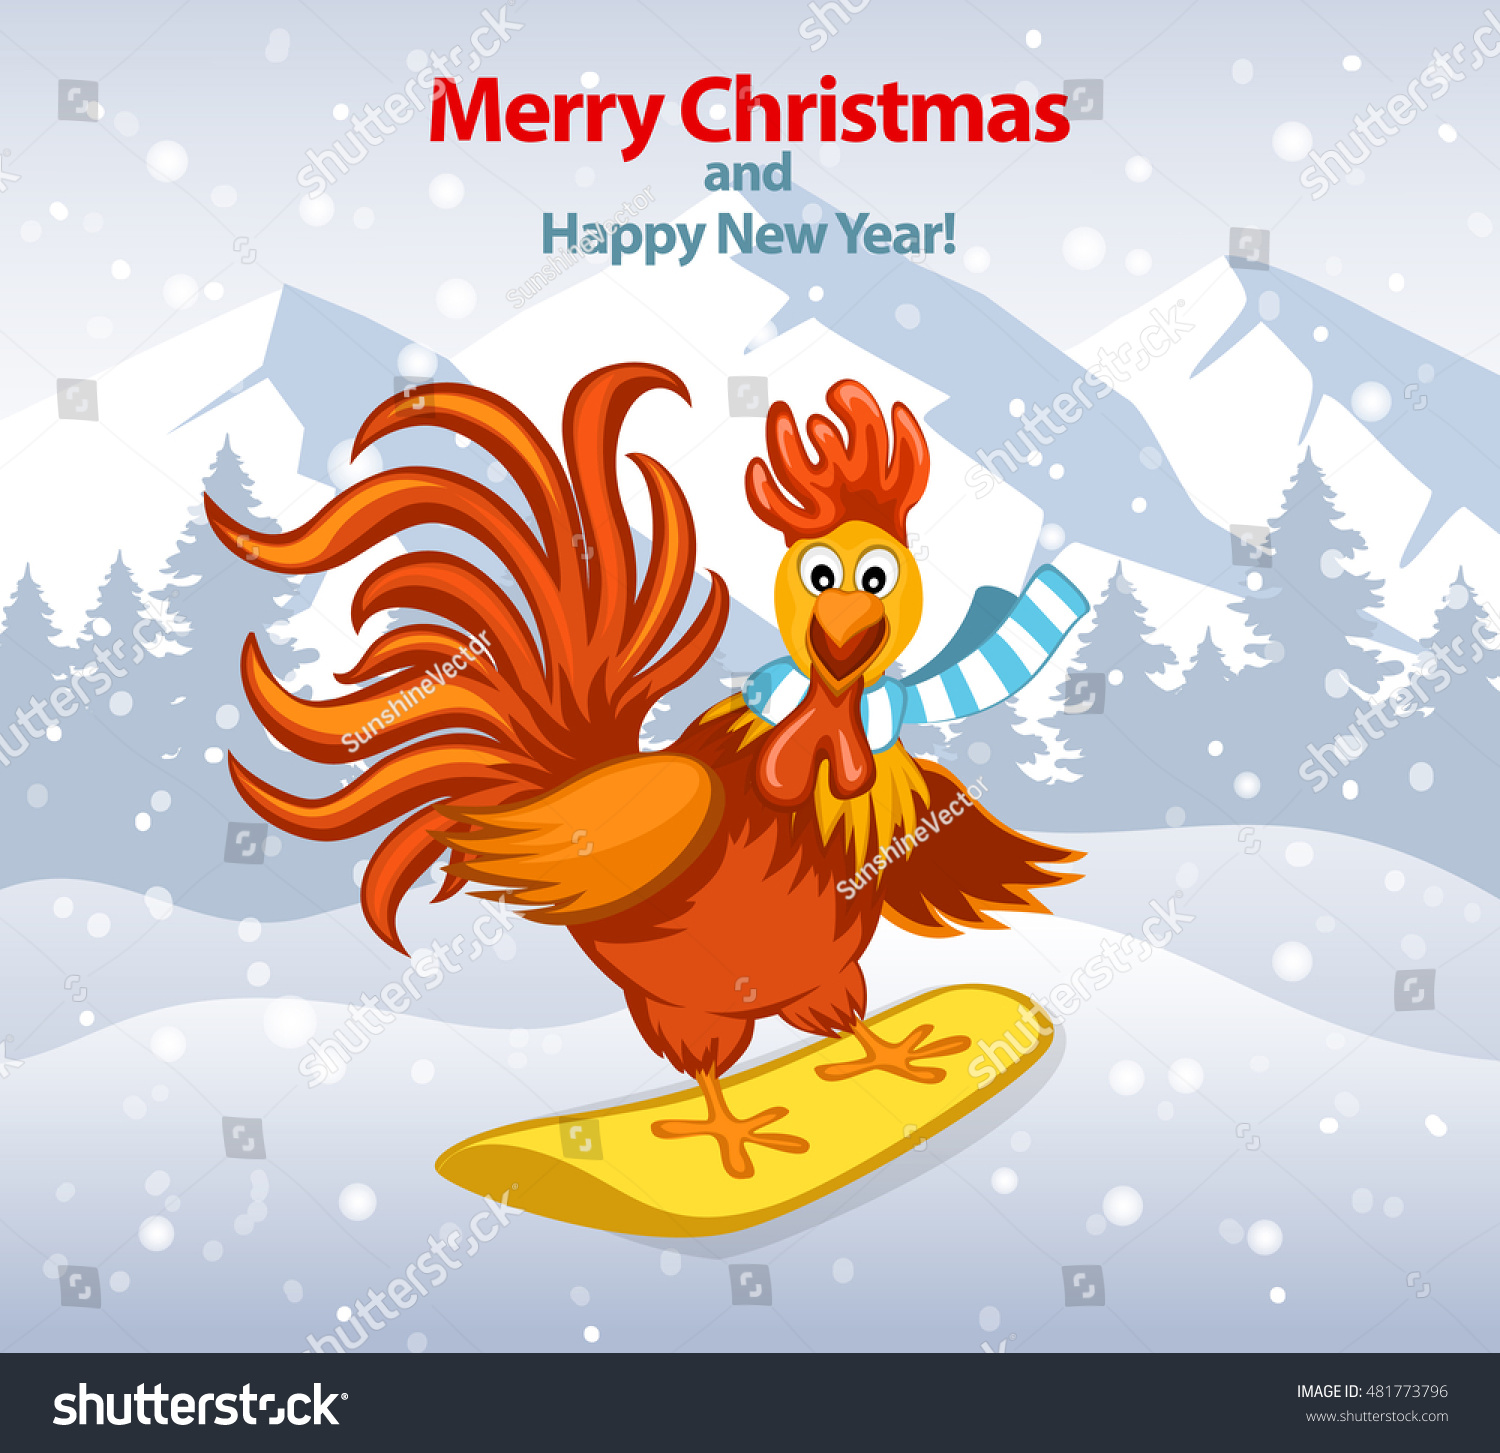 2017 merry christmas and happy new year greeting card with cute funny rooster on snowboard vector